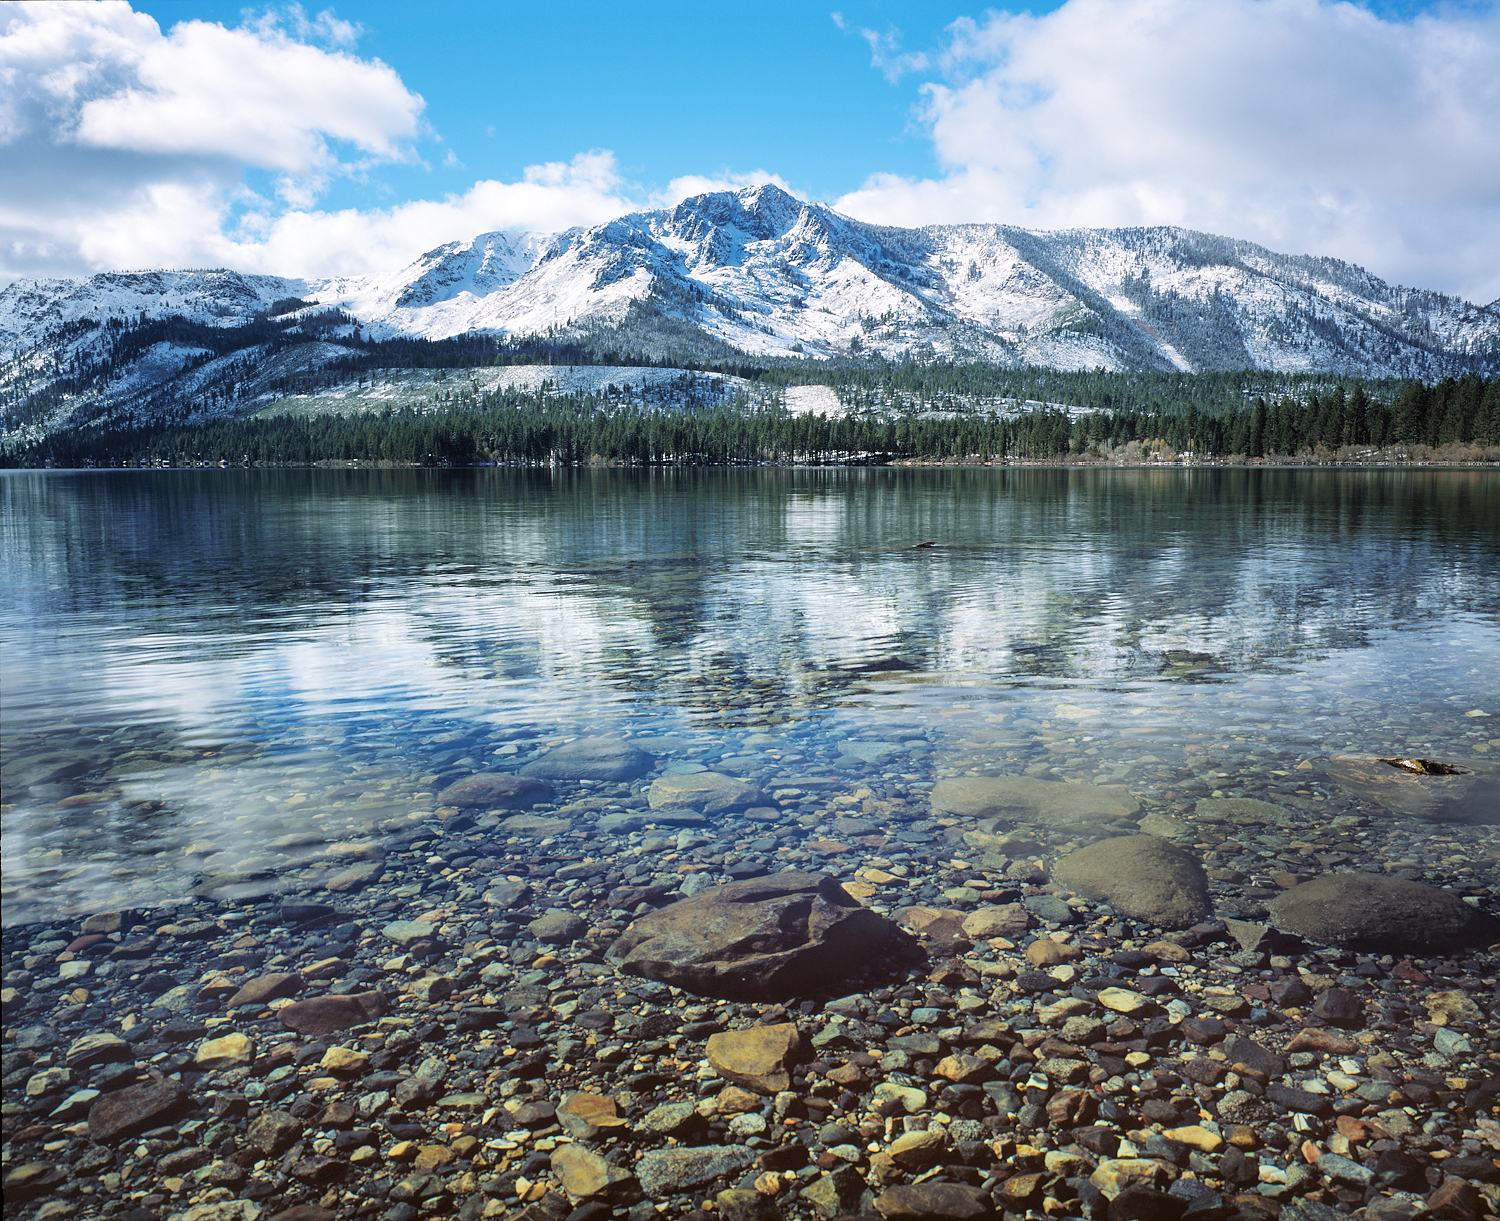 Fallen Leaf Clarity and Mount Tallac